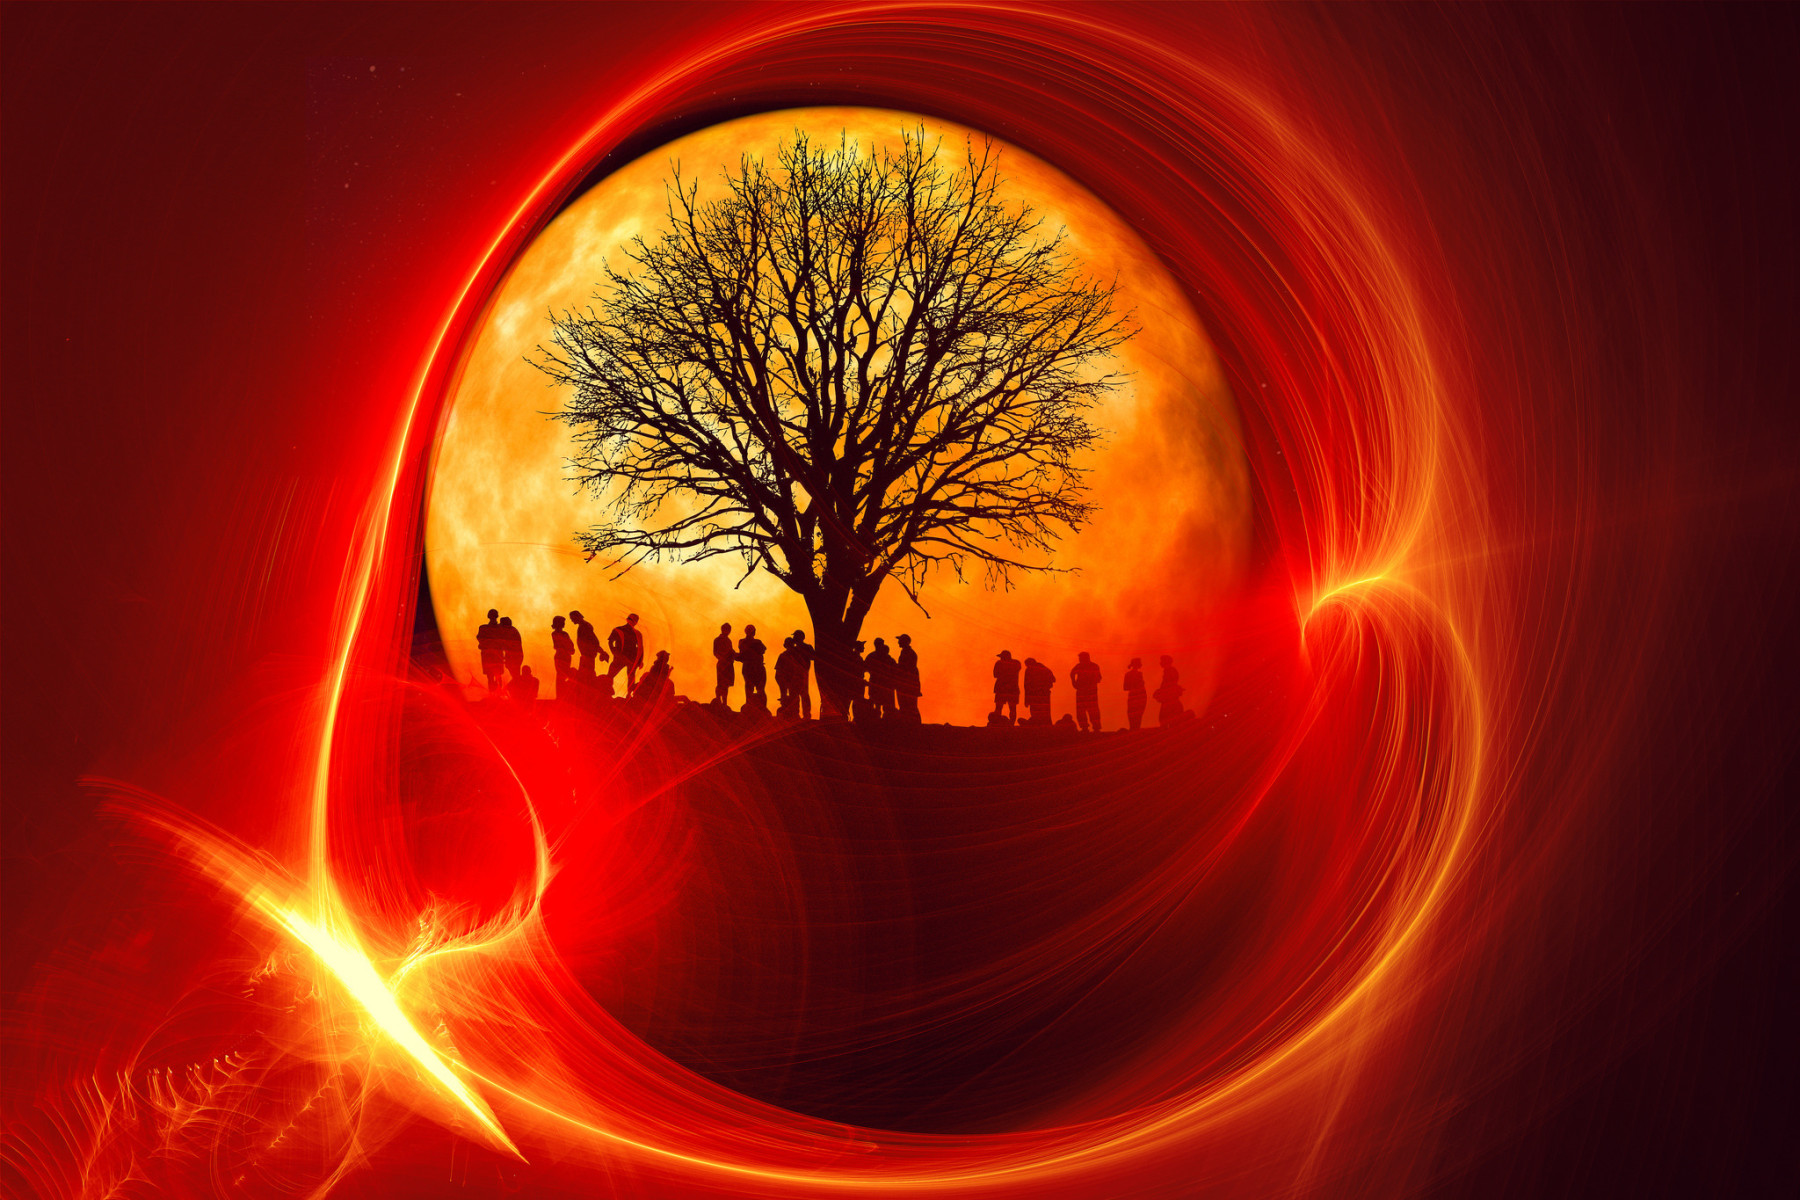 Peoples, Tree and Nature Abstract Wallpaper